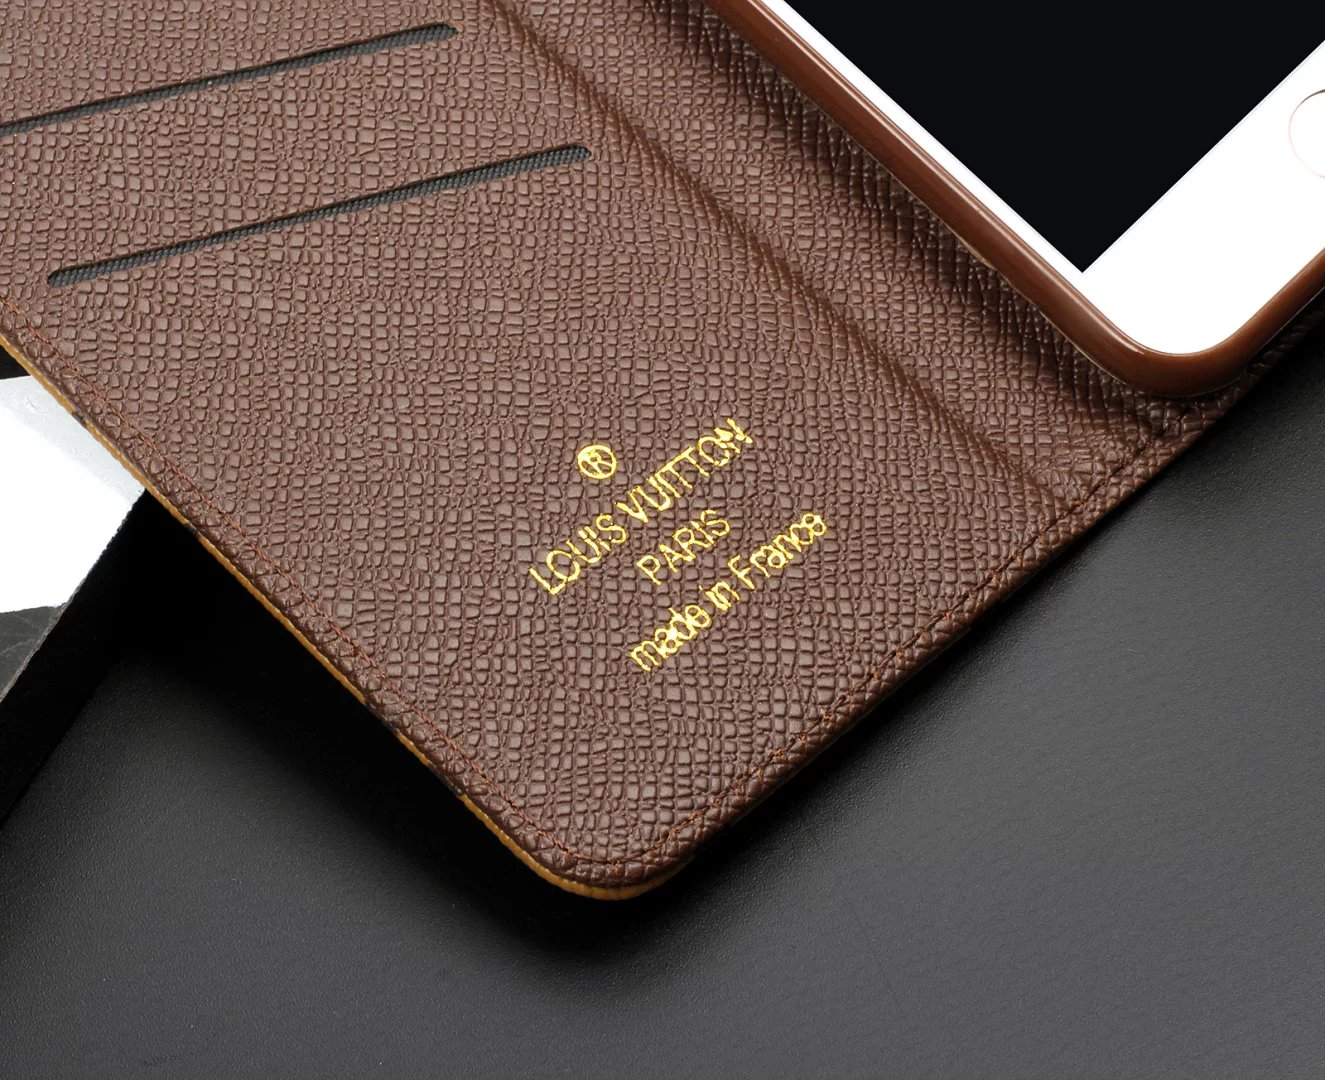 iphone hülle mit eigenem foto case für iphone Louis Vuitton iphone7 hülle iphone 7 lustige hüllen iphone 7 marken hüllen apple schutzhülle iphone 7 outdoor cover iphone 7 handyhüllen bestellen iphone 7 alu ca7